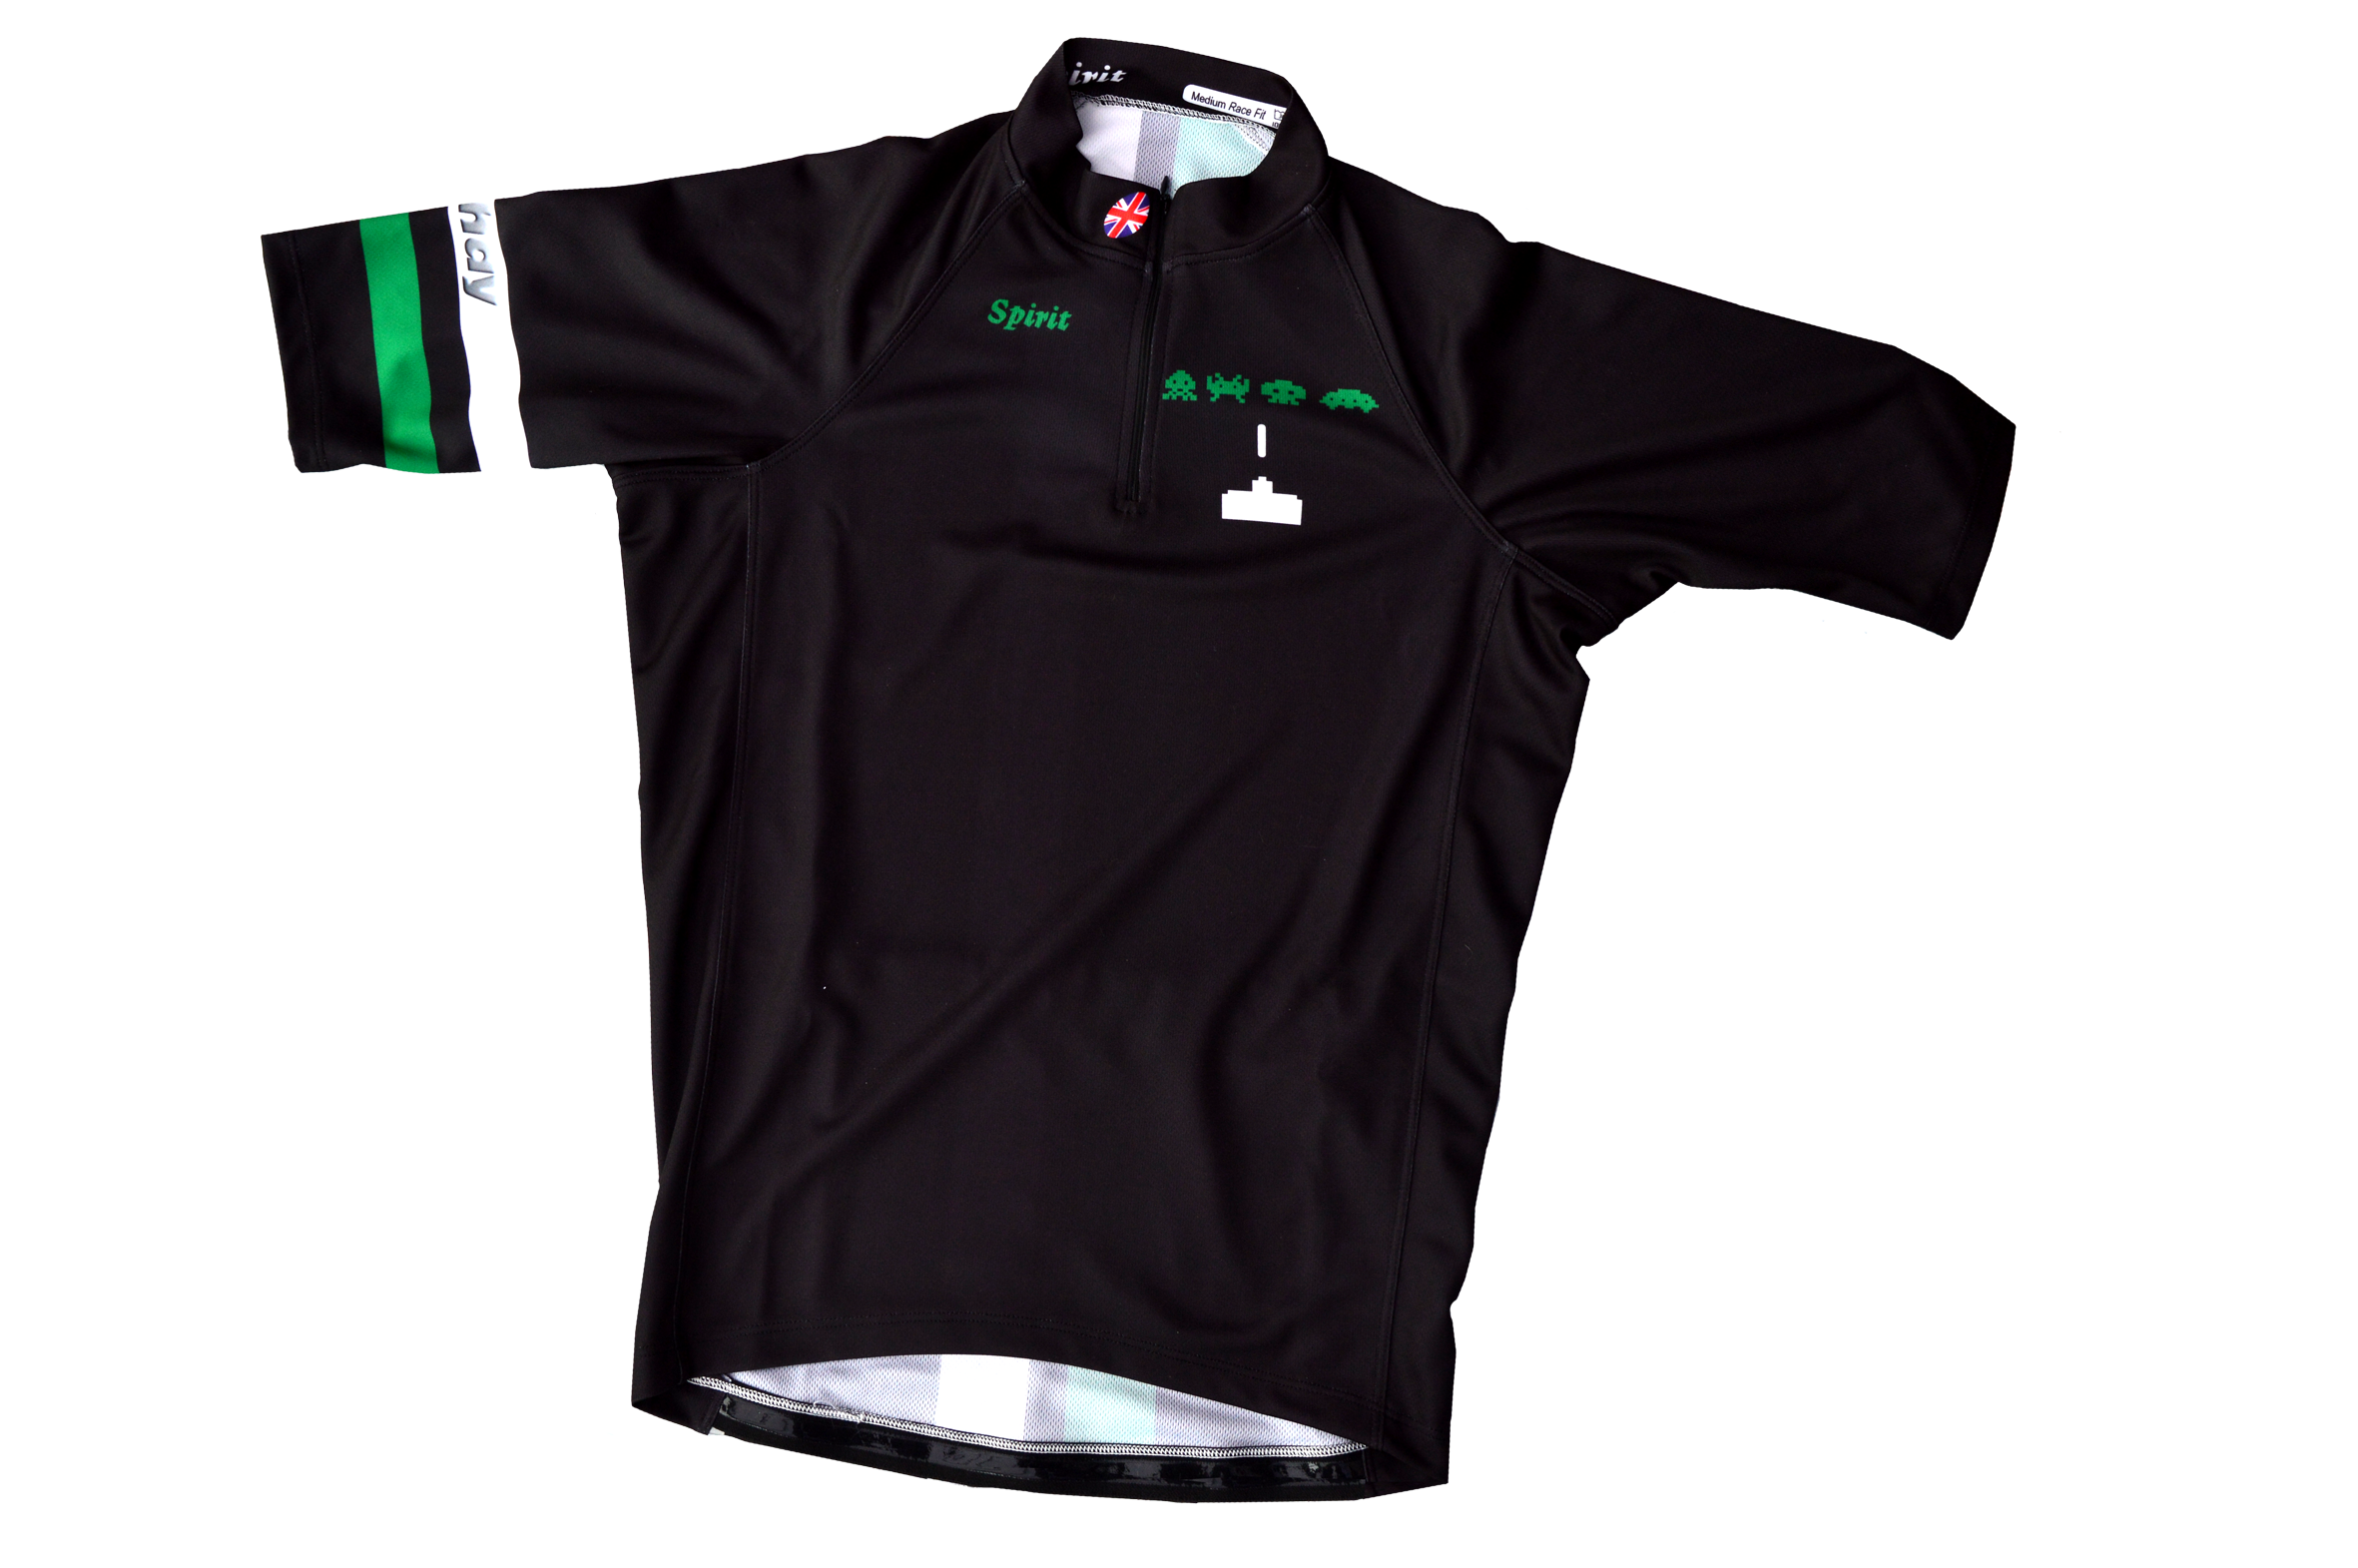 Design your own jersey competition - winning designs from